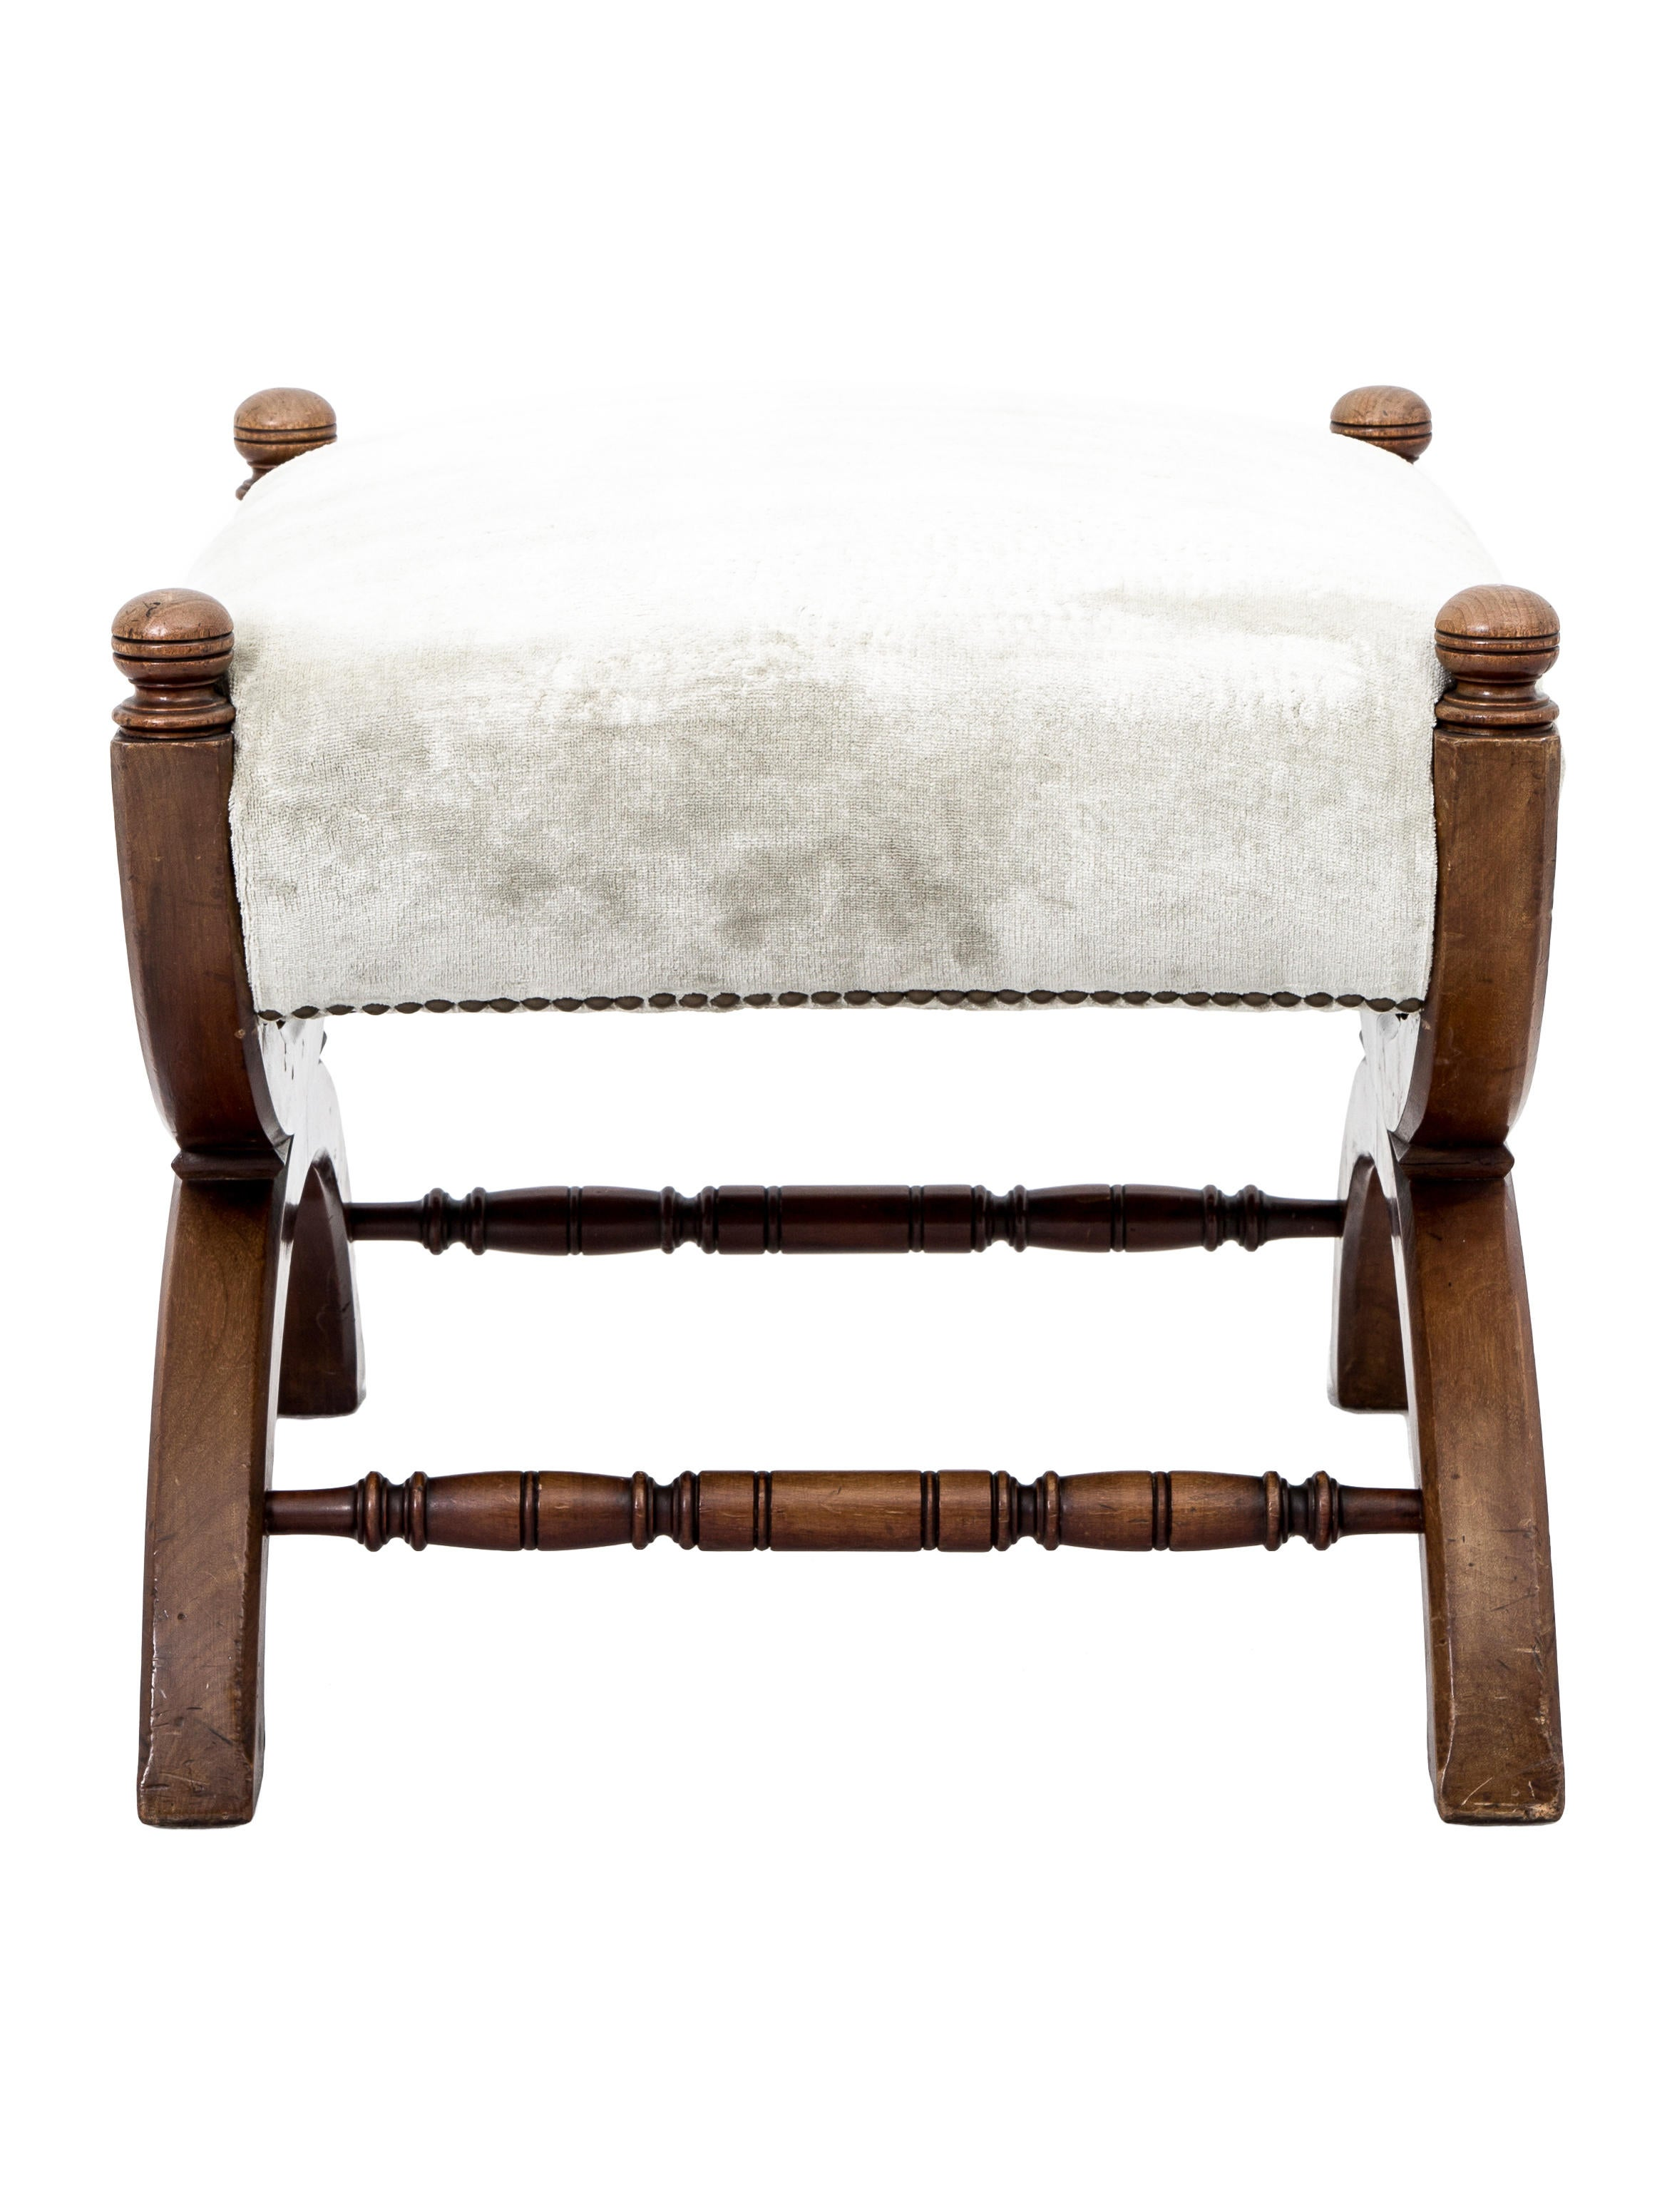 Ottoman Curule Bench Furniture OTTOM20009 The RealReal : OTTOM200093enlarged from www.therealreal.com size 2352 x 3102 jpeg 422kB